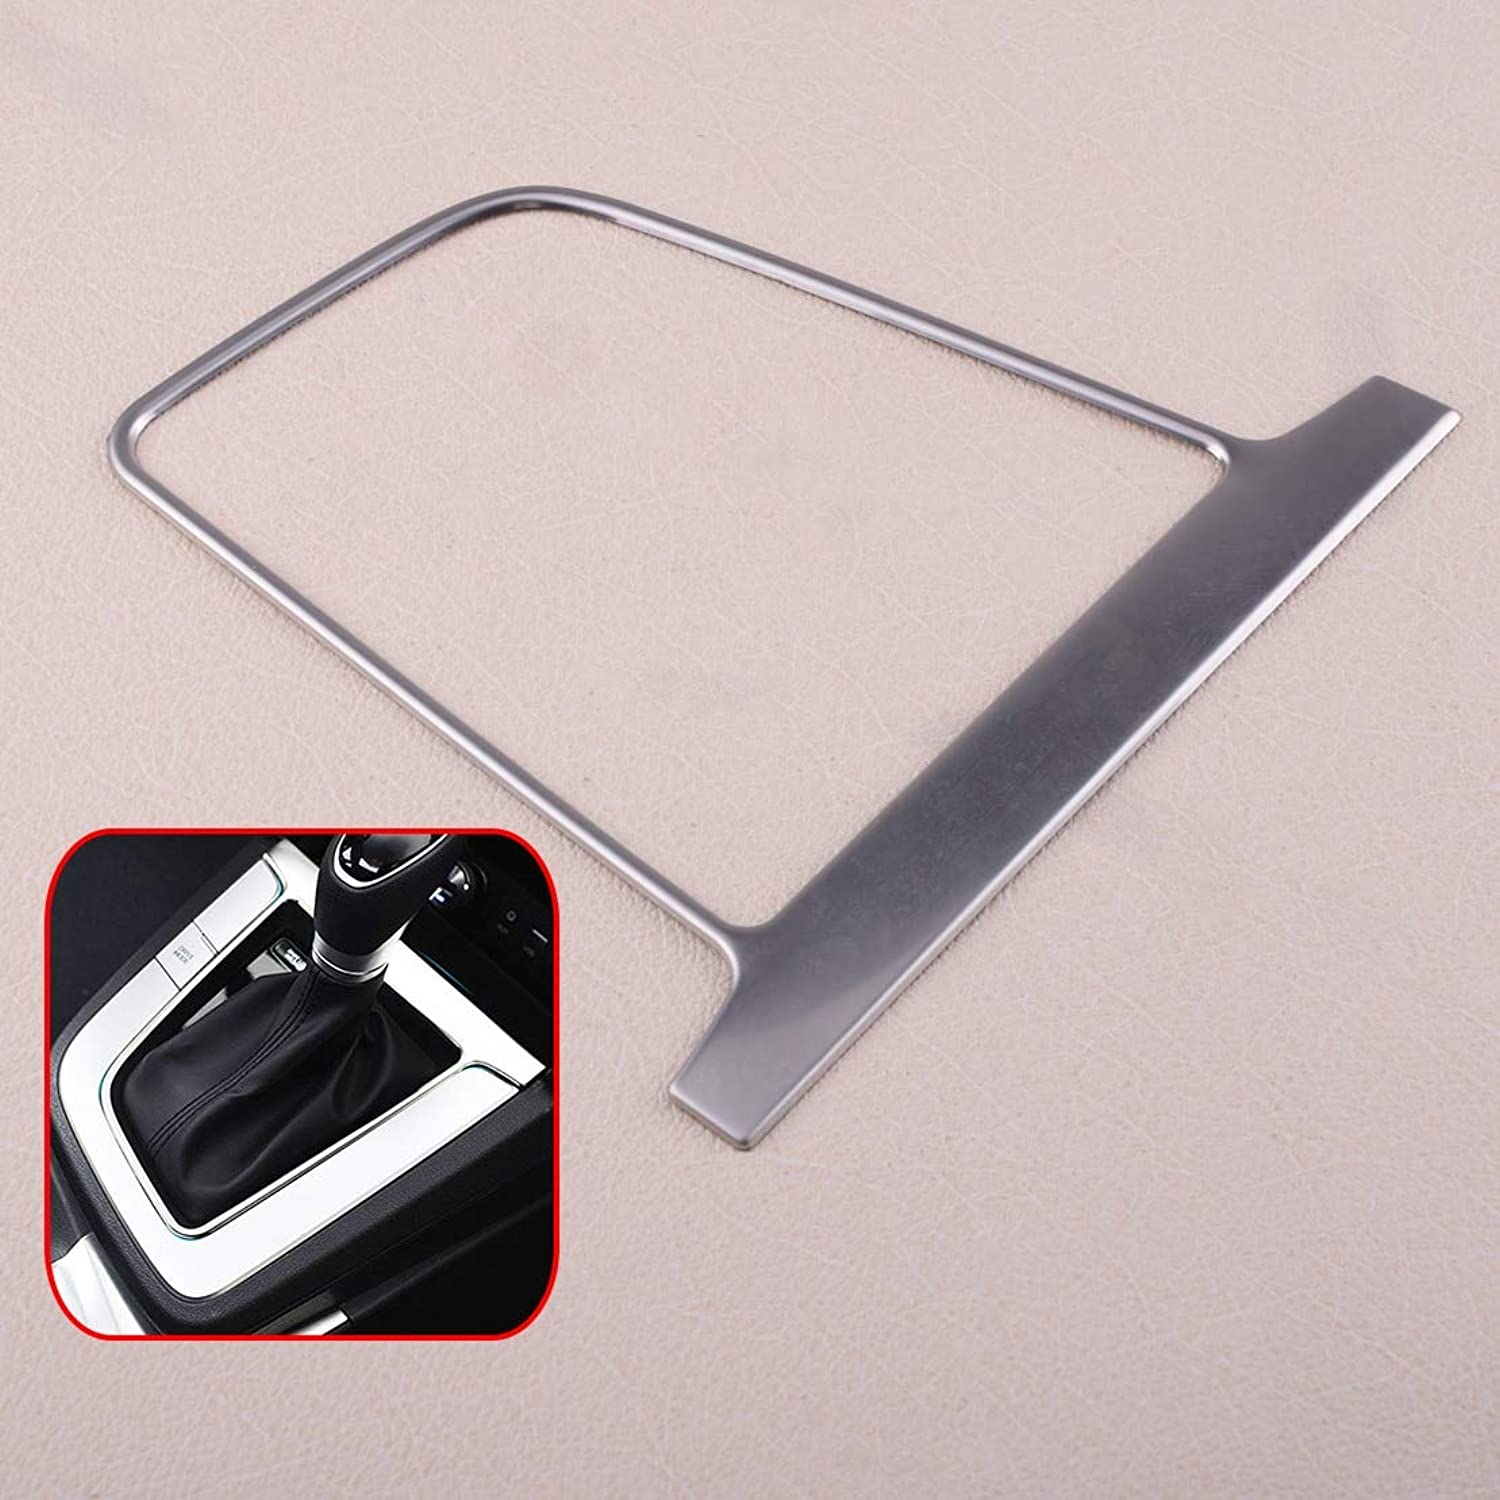 CalapStore  New ABS Chrome Car Interior Gear Shift Panel Cover Trim Frame Fit for Hyundai Elantra AD